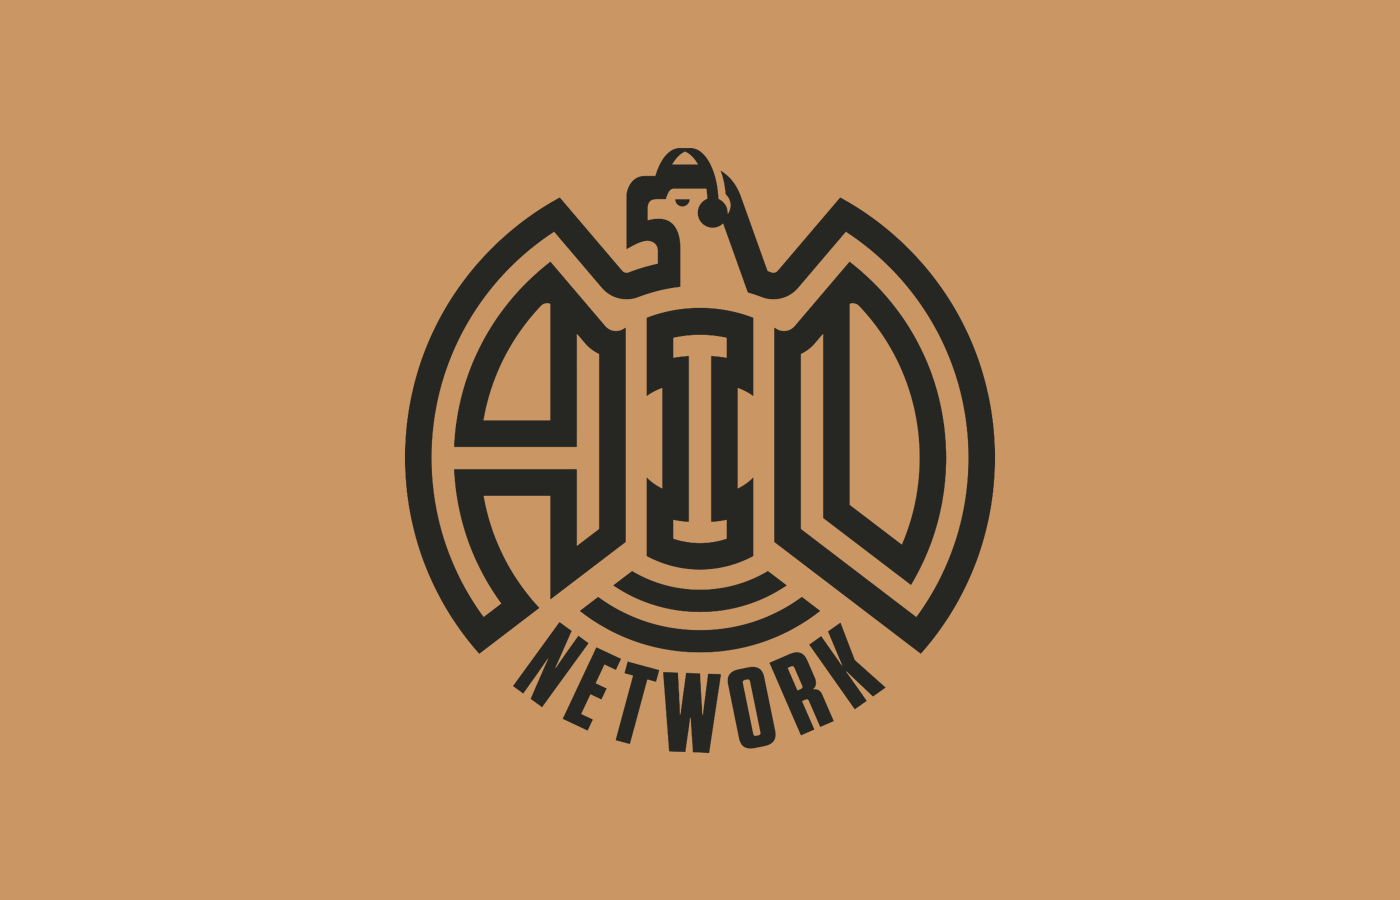 The AID Network